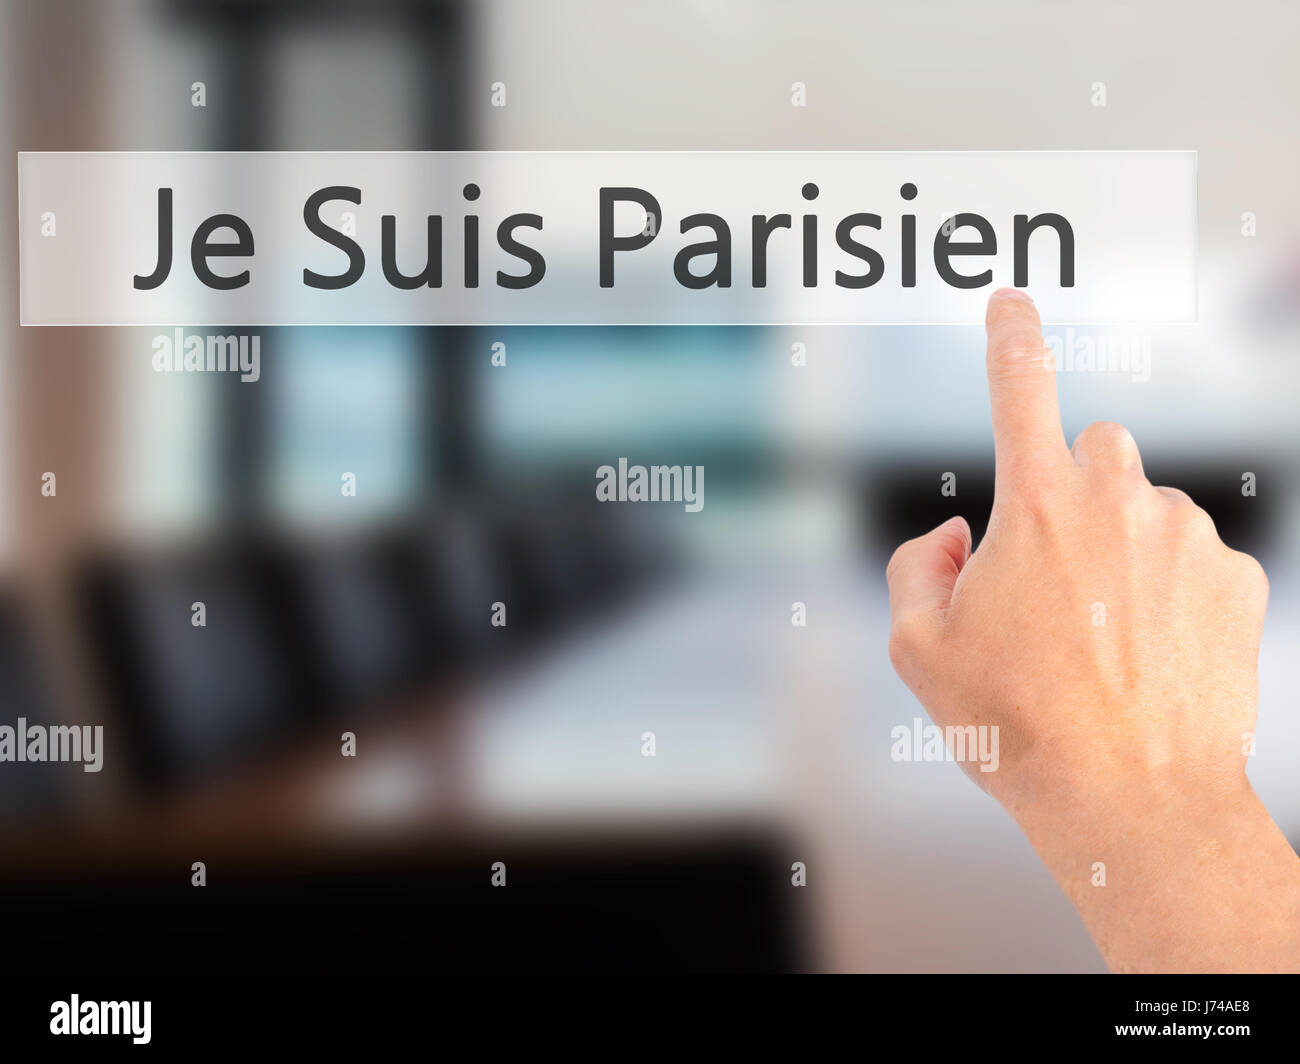 Je Suis Parisien ( I am Parisien)  - Hand pressing a button on blurred background concept . Business, technology, Stock Photo